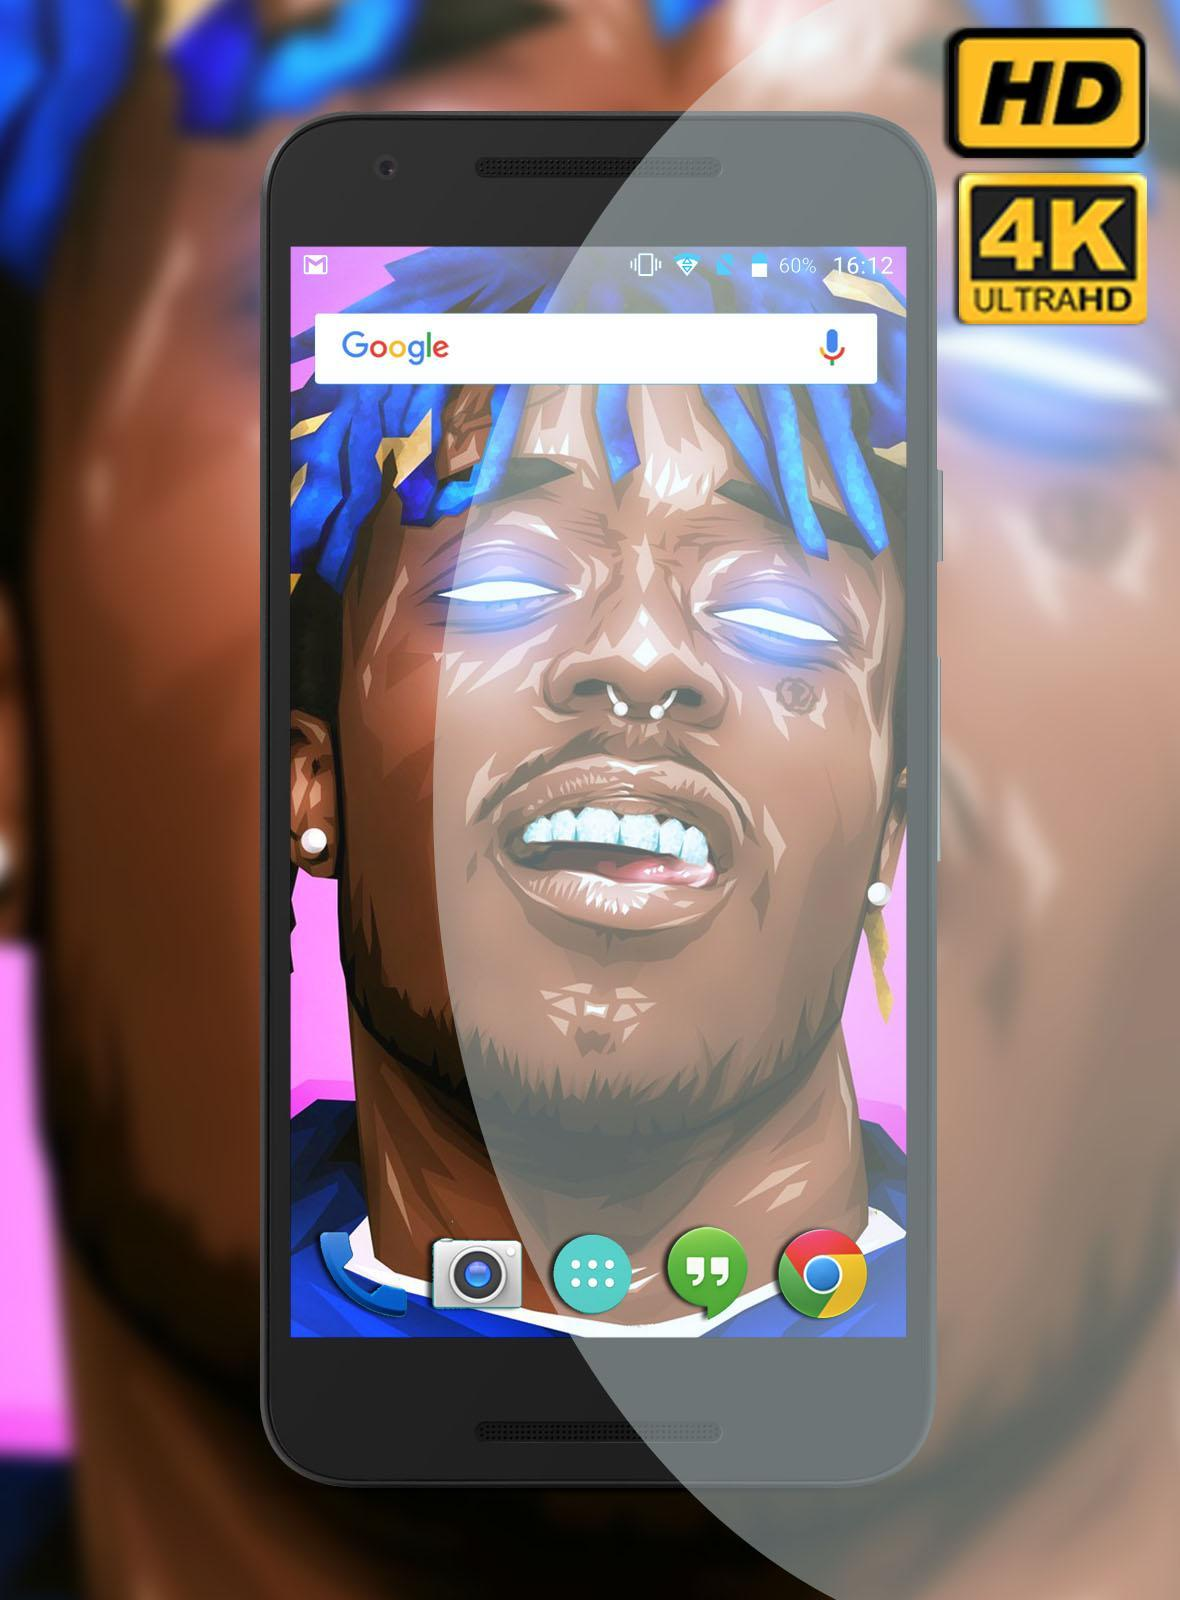 Lil Uzi Vert Wallpaper Hd For Android Apk Download Fully supports horizontal orientation 8. lil uzi vert wallpaper hd for android